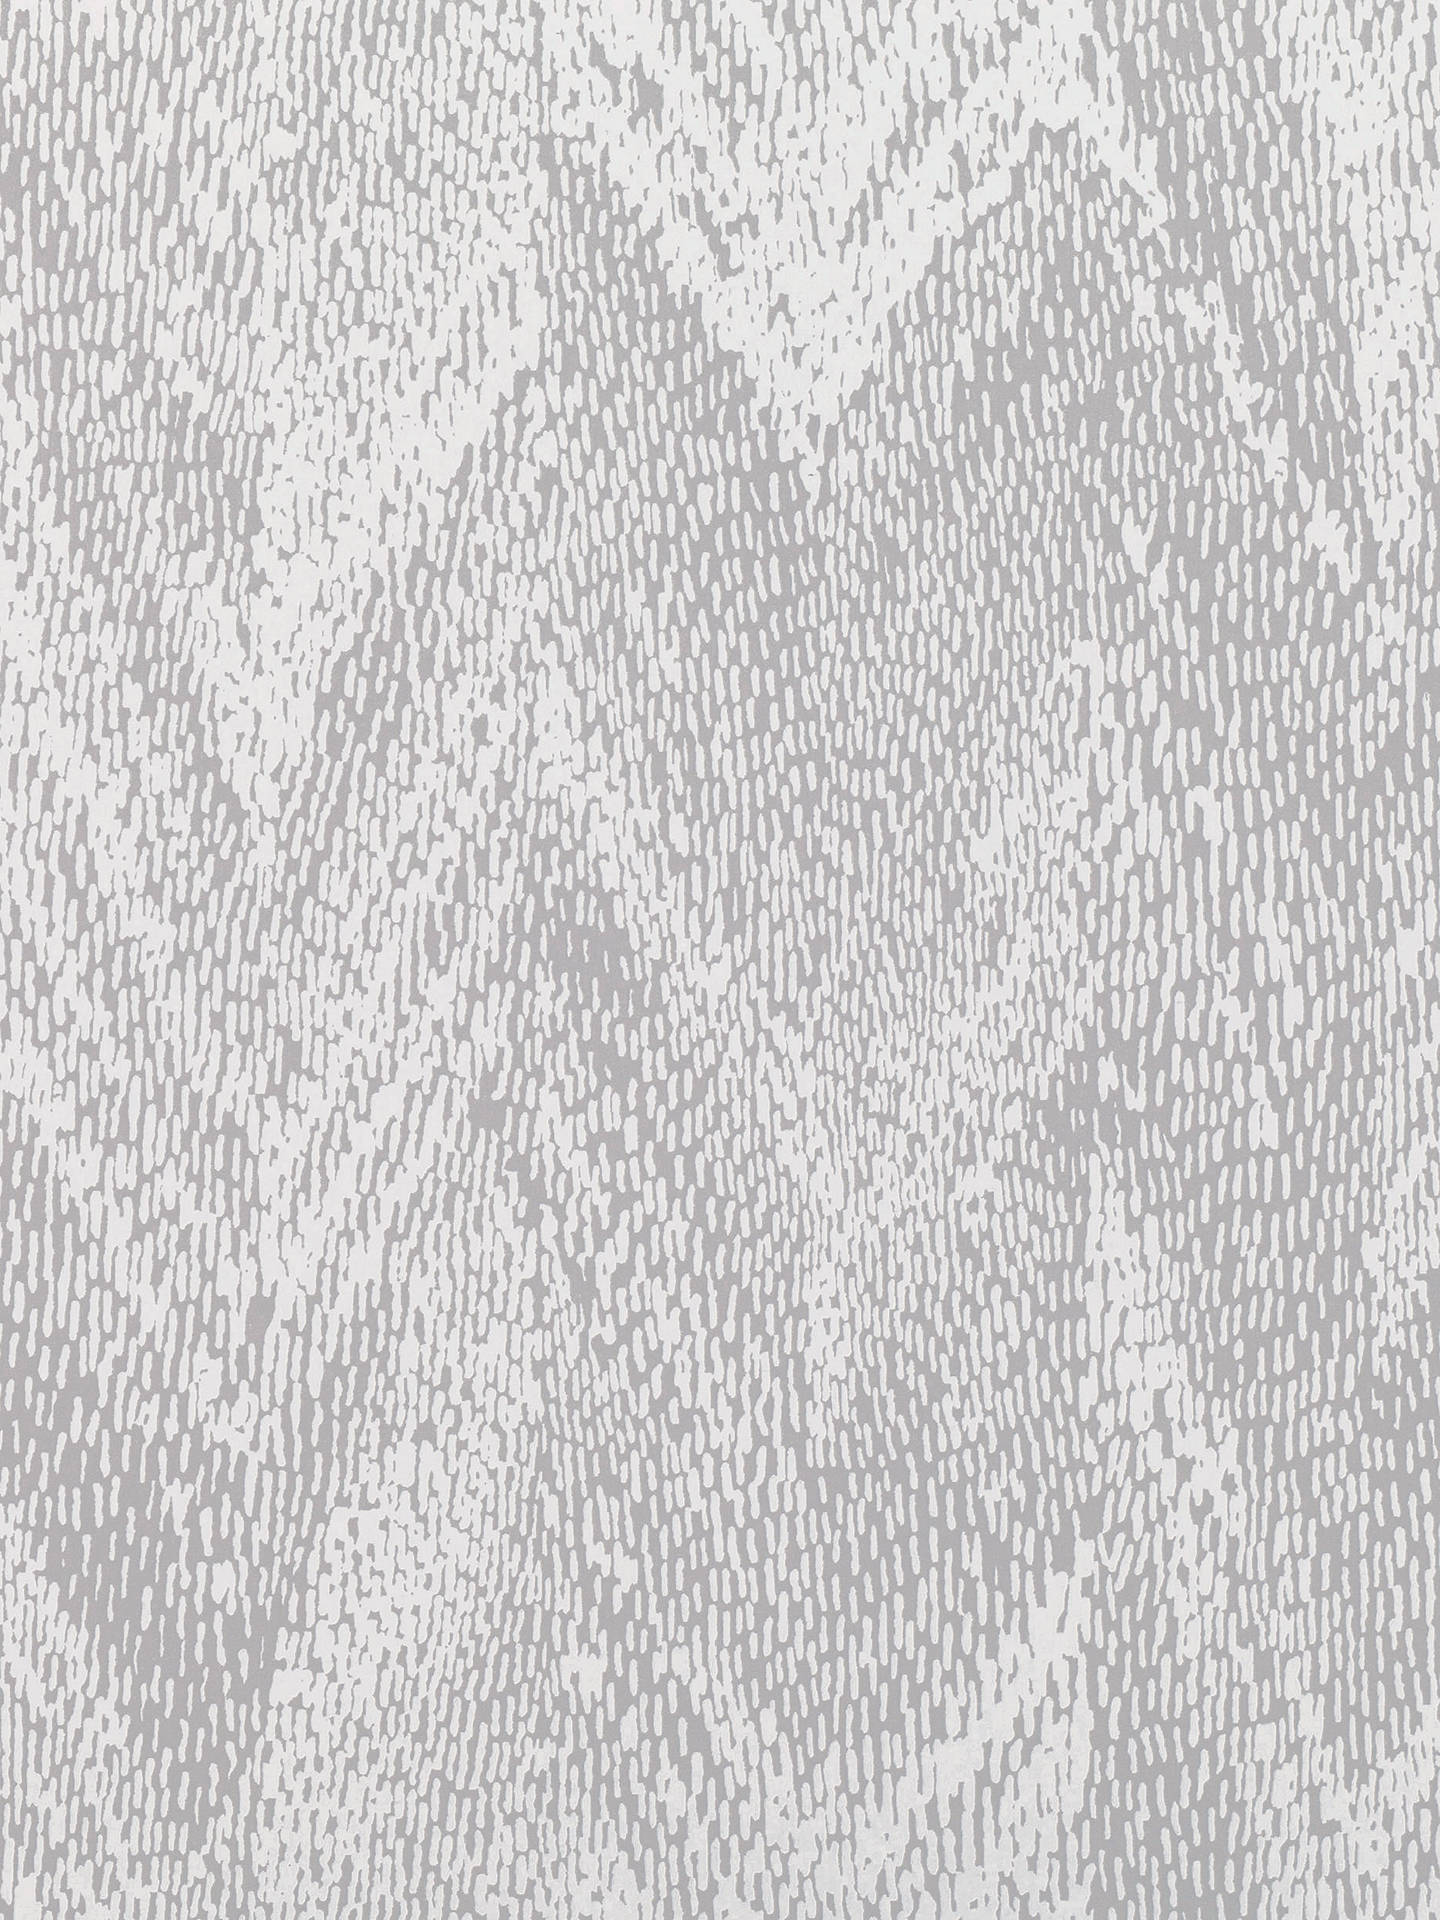 Buy Romo Itsuki Paste the Wall Wallpaper, Feather Grey W380/01 Online at johnlewis.com